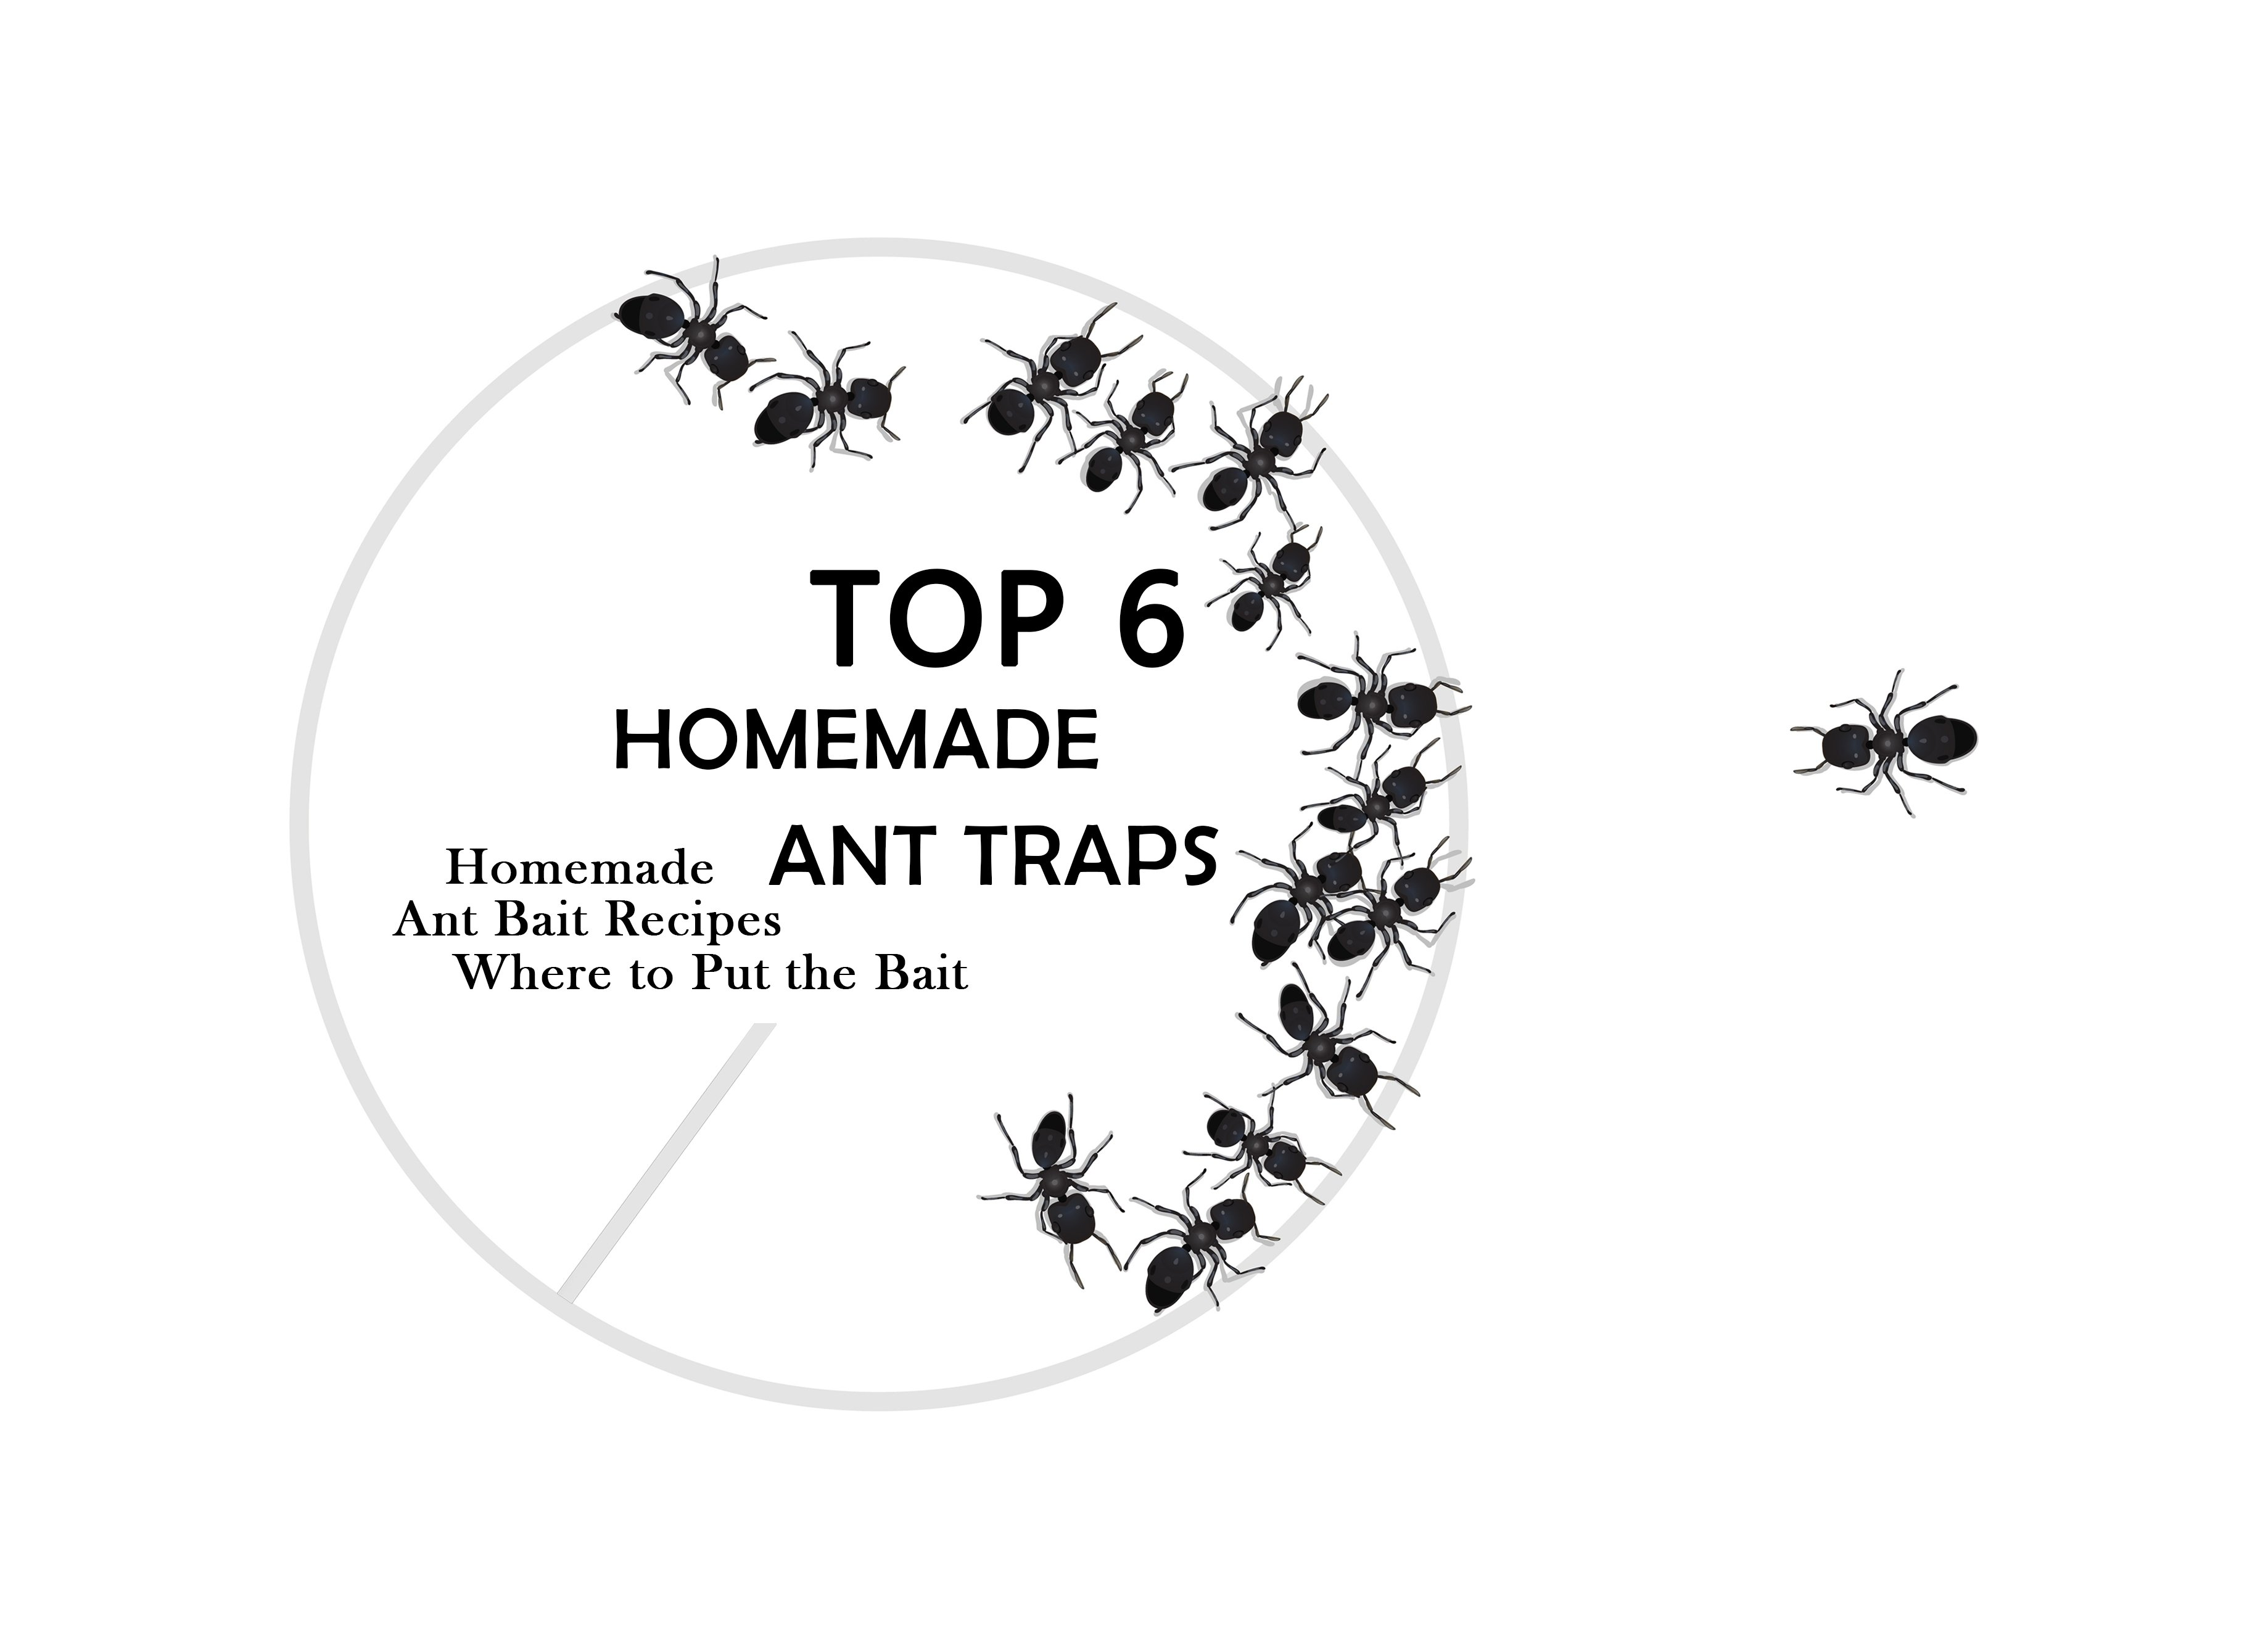 DIY Homemade Ant Traps